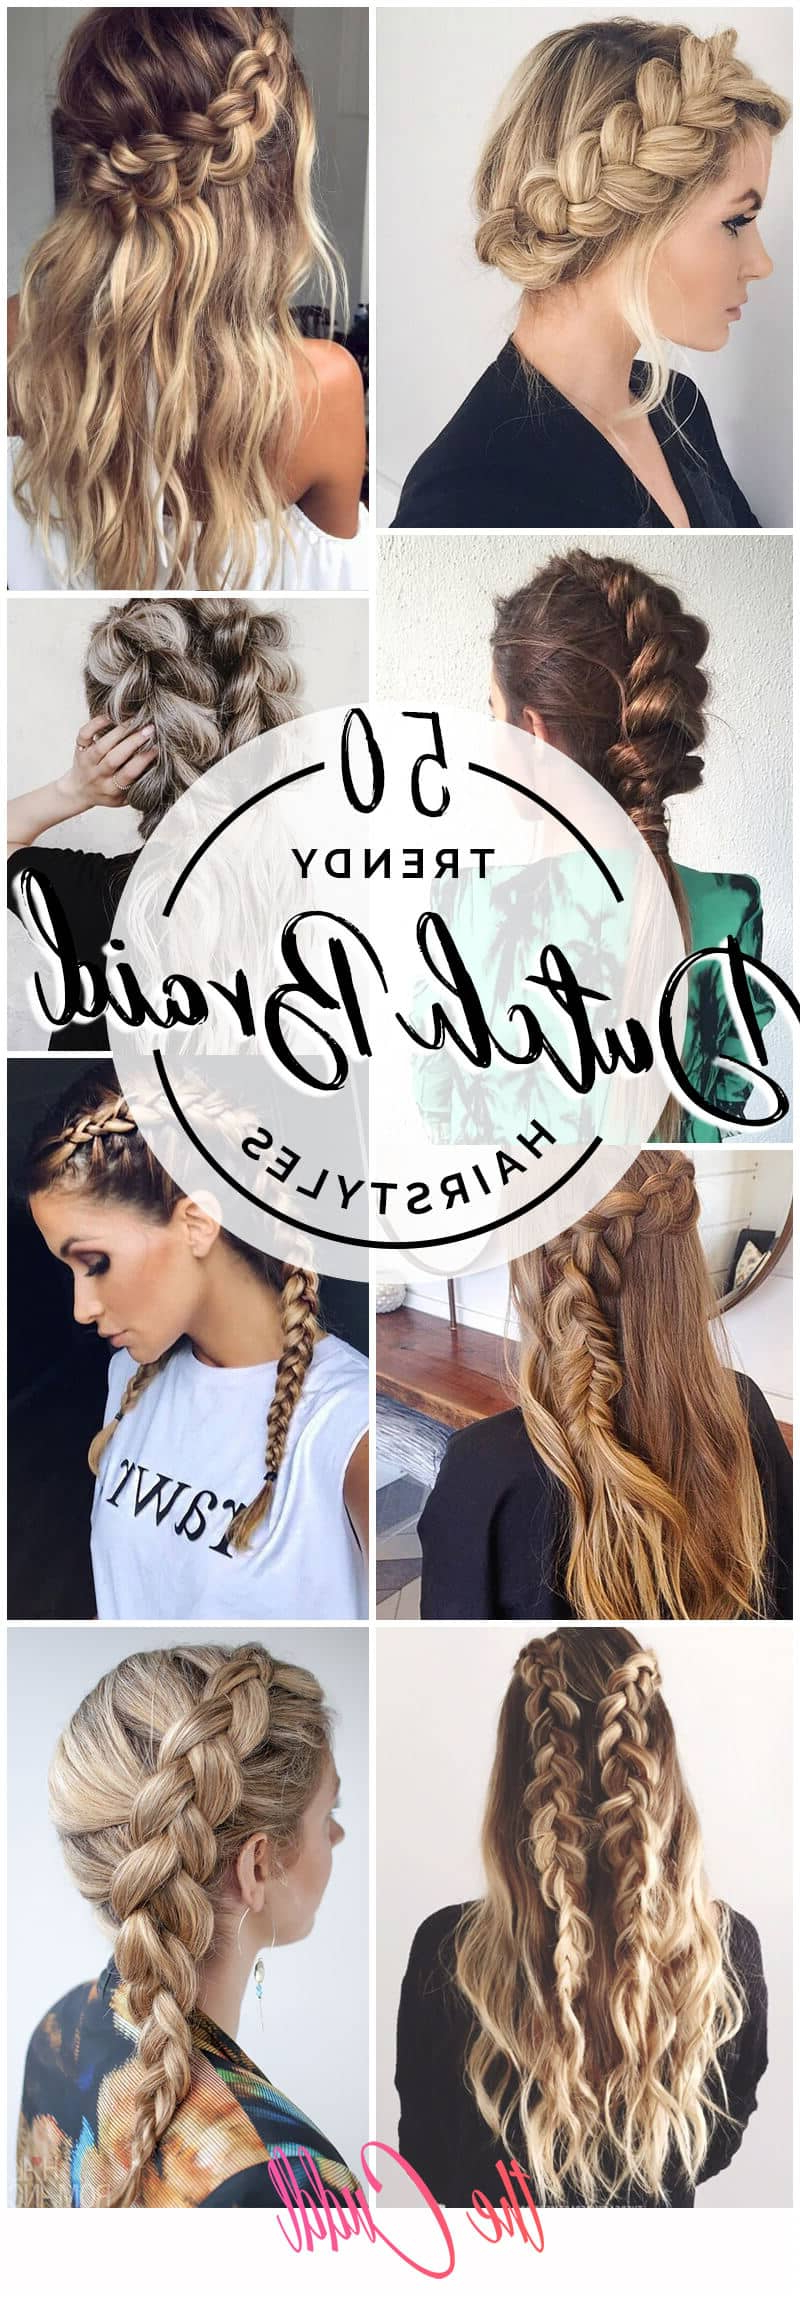 2019 Wide Crown Braided Hairstyles With A Twist Throughout 50 Trendy Dutch Braids Hairstyle Ideas To Keep You Cool In  (View 1 of 20)